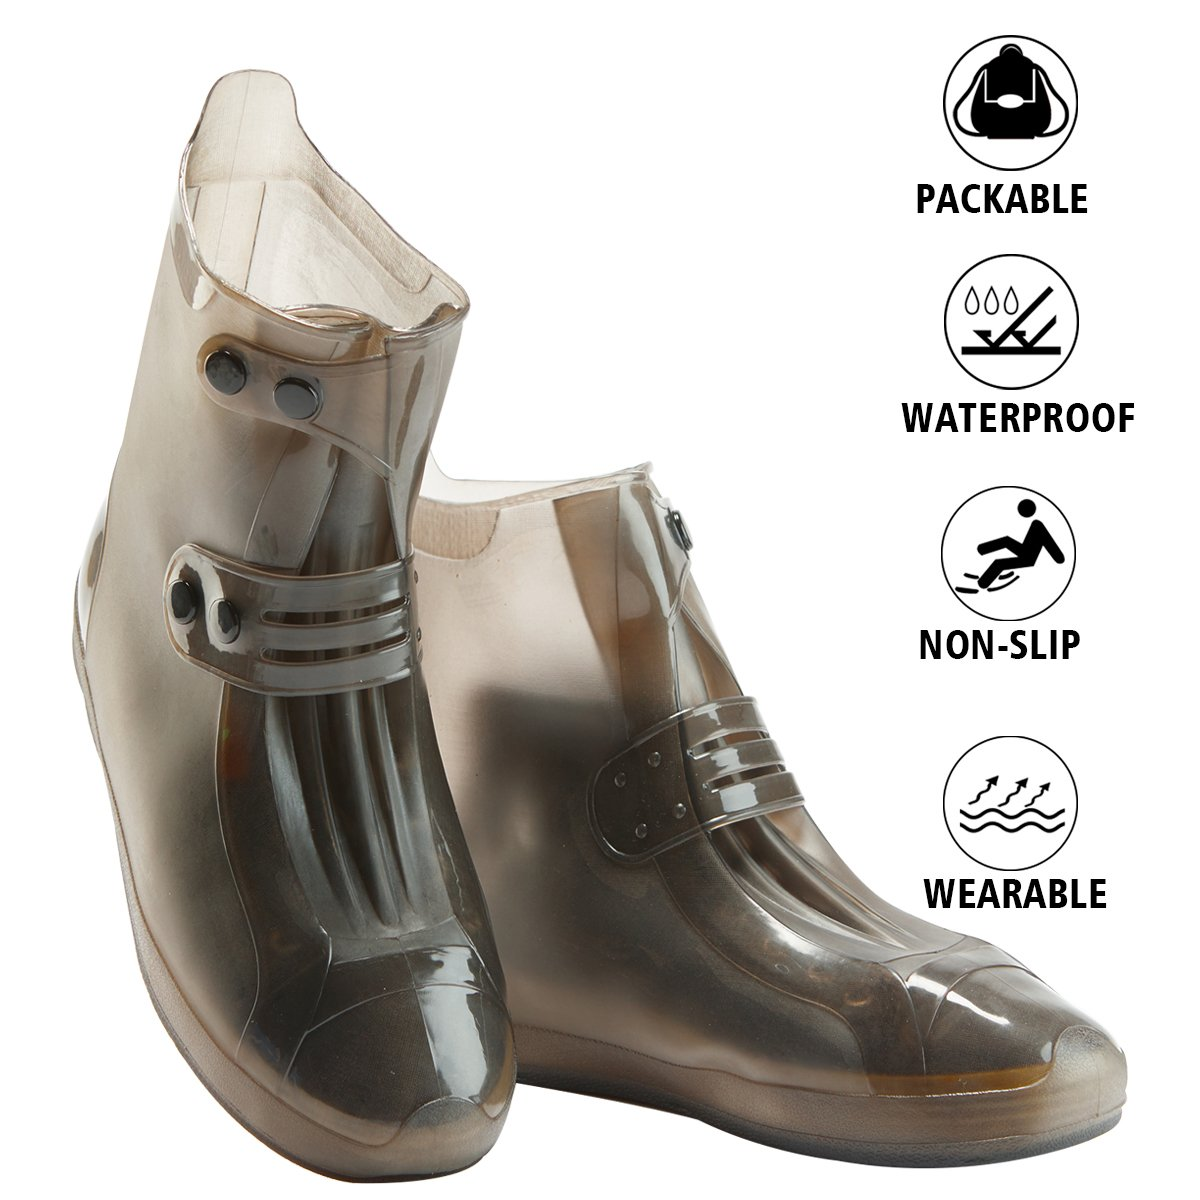 Shoes Cover - Waterproof Reusable Boots Cover Foldable Non-slip Rainstorm Rainy Day Rain Snow Gear Thicken Sole Boots Overshoes for Men Women Kids (XXL, Black)